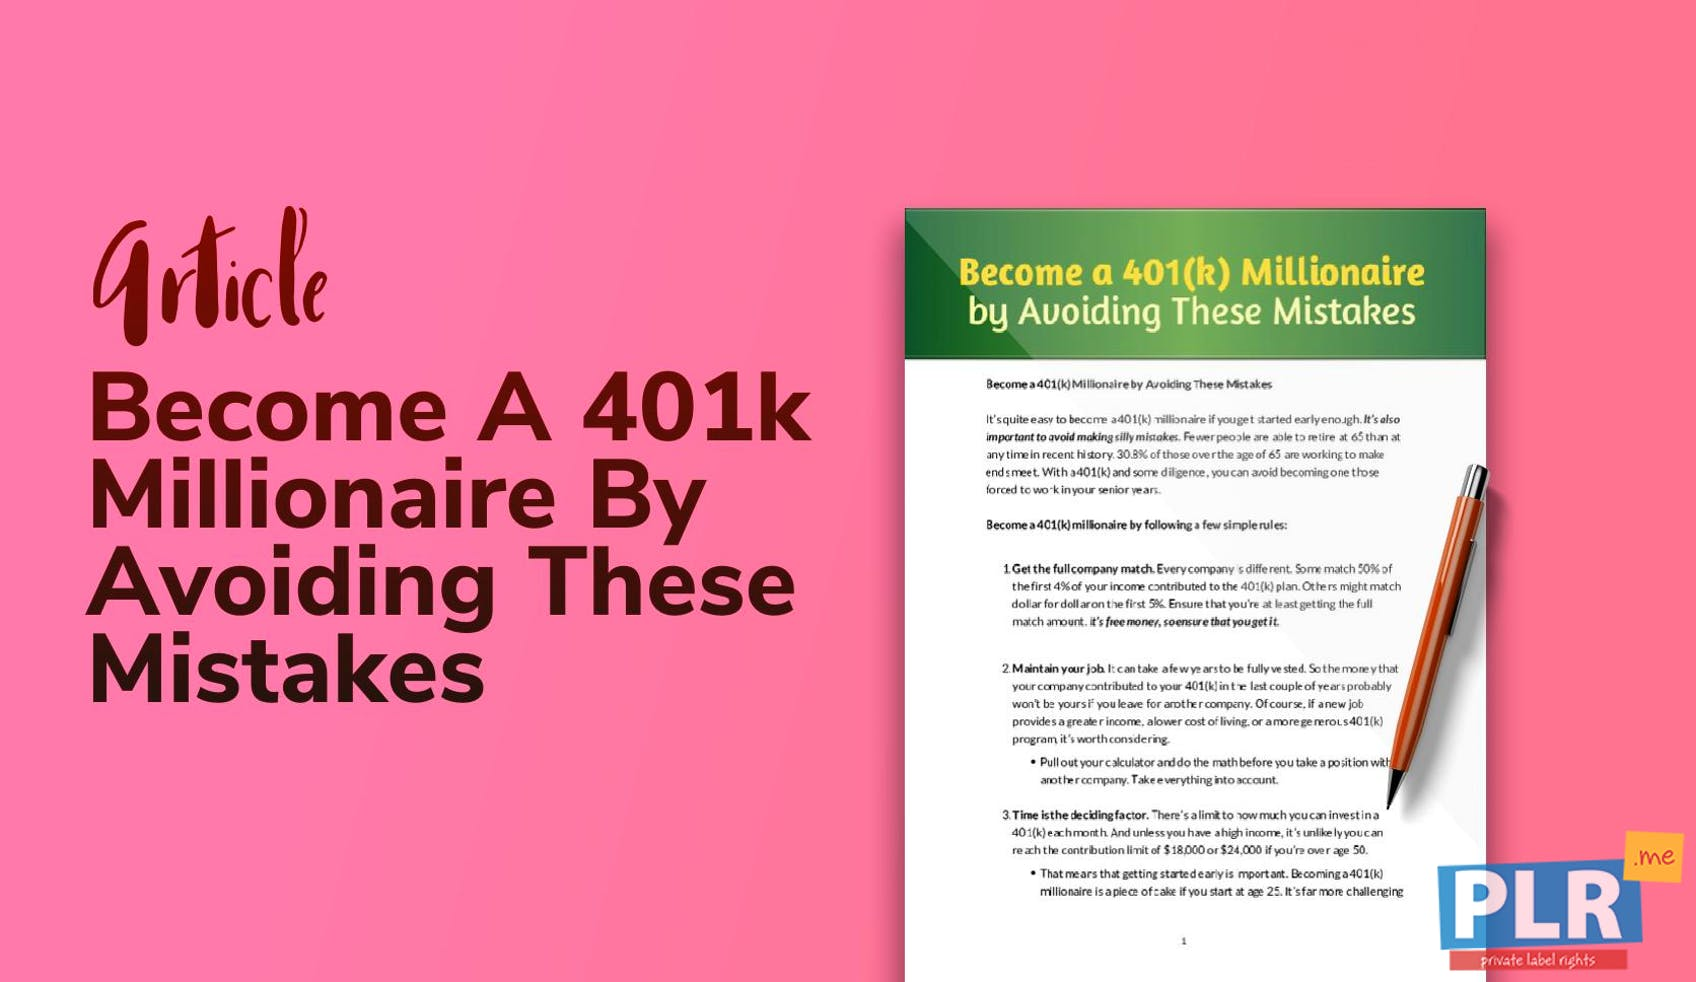 Become A 401k Millionaire By Avoiding These Mistakes